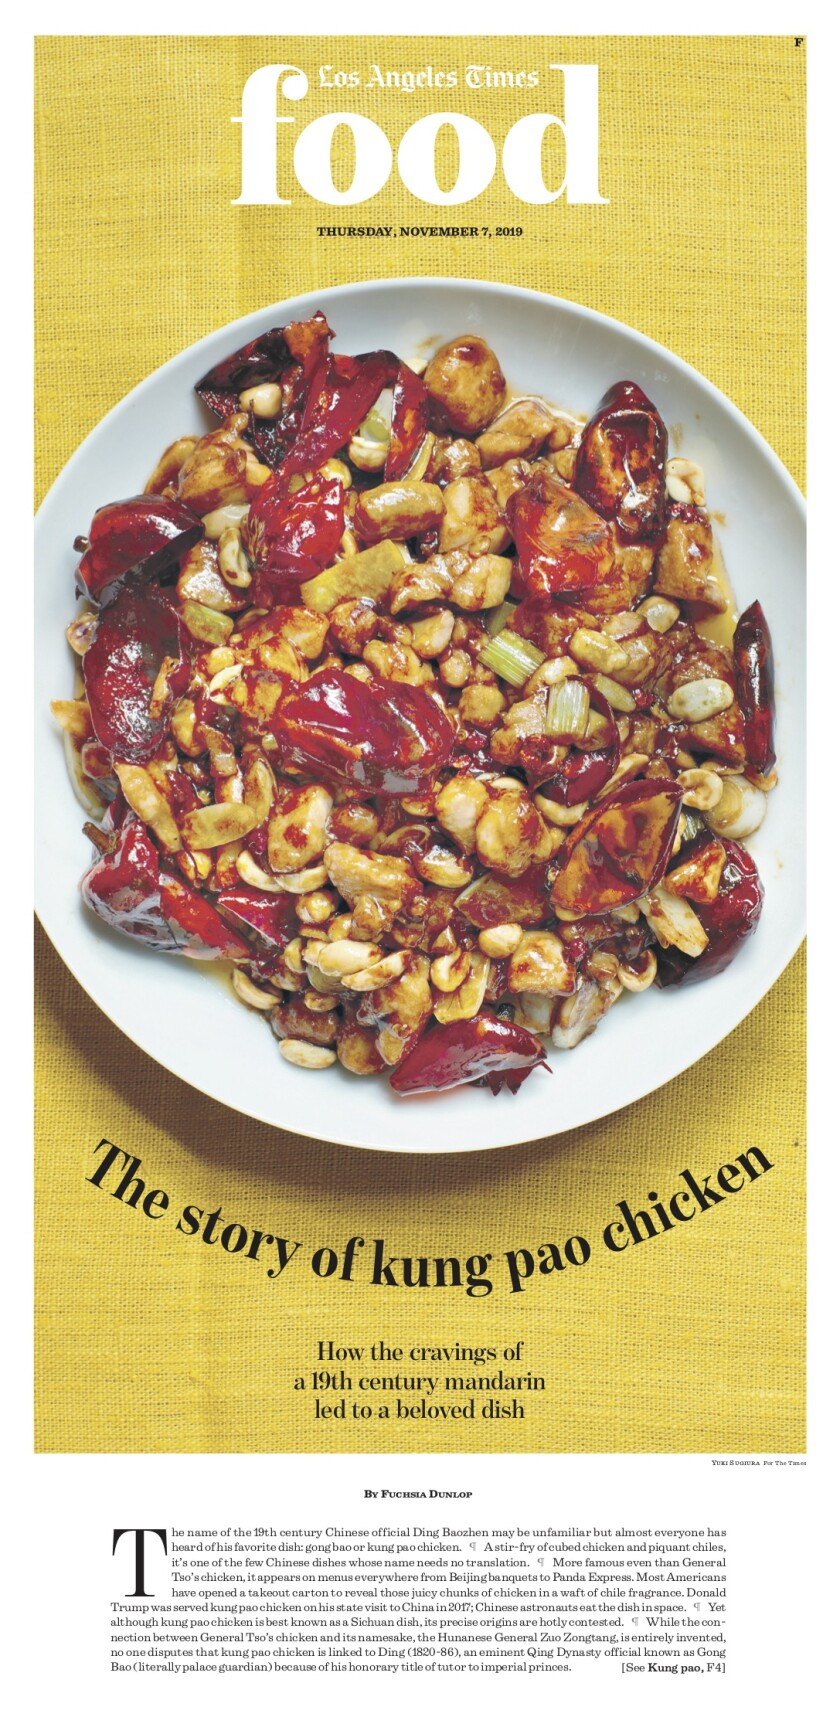 Los Angeles Times Food cover, November 7, 2019